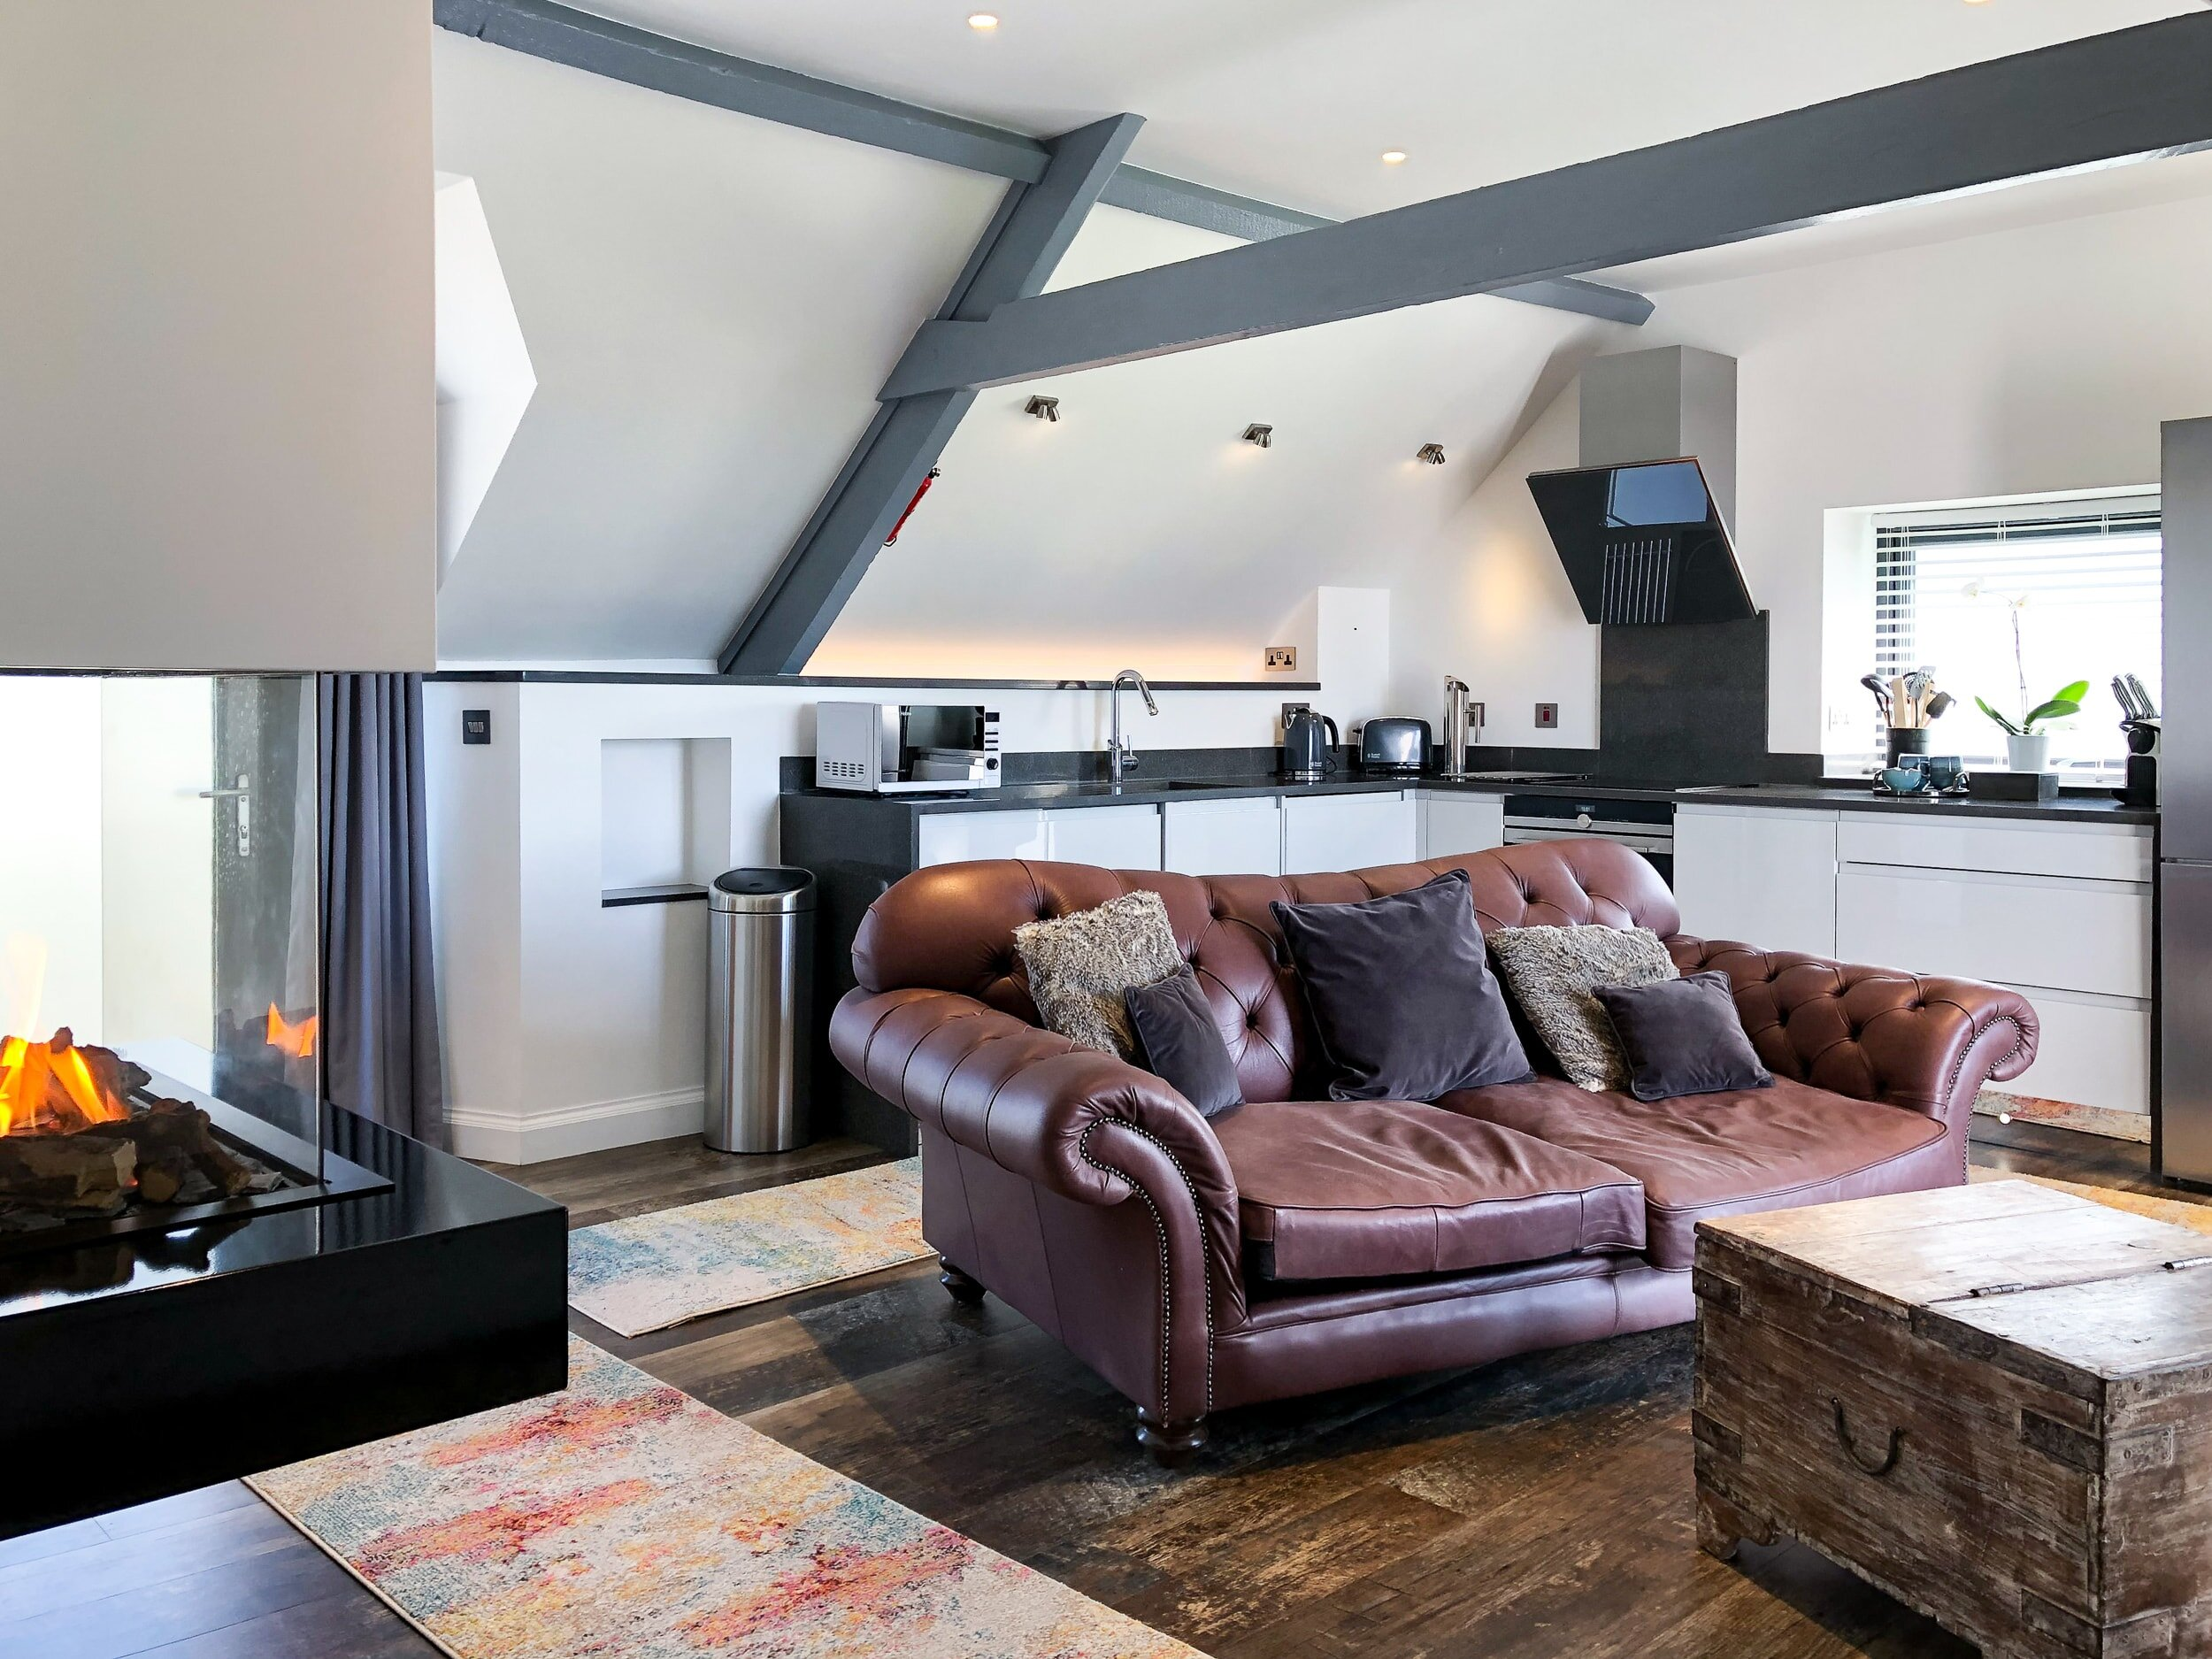 Skyfall open plan living area and fully fitted kitchen for self-catering